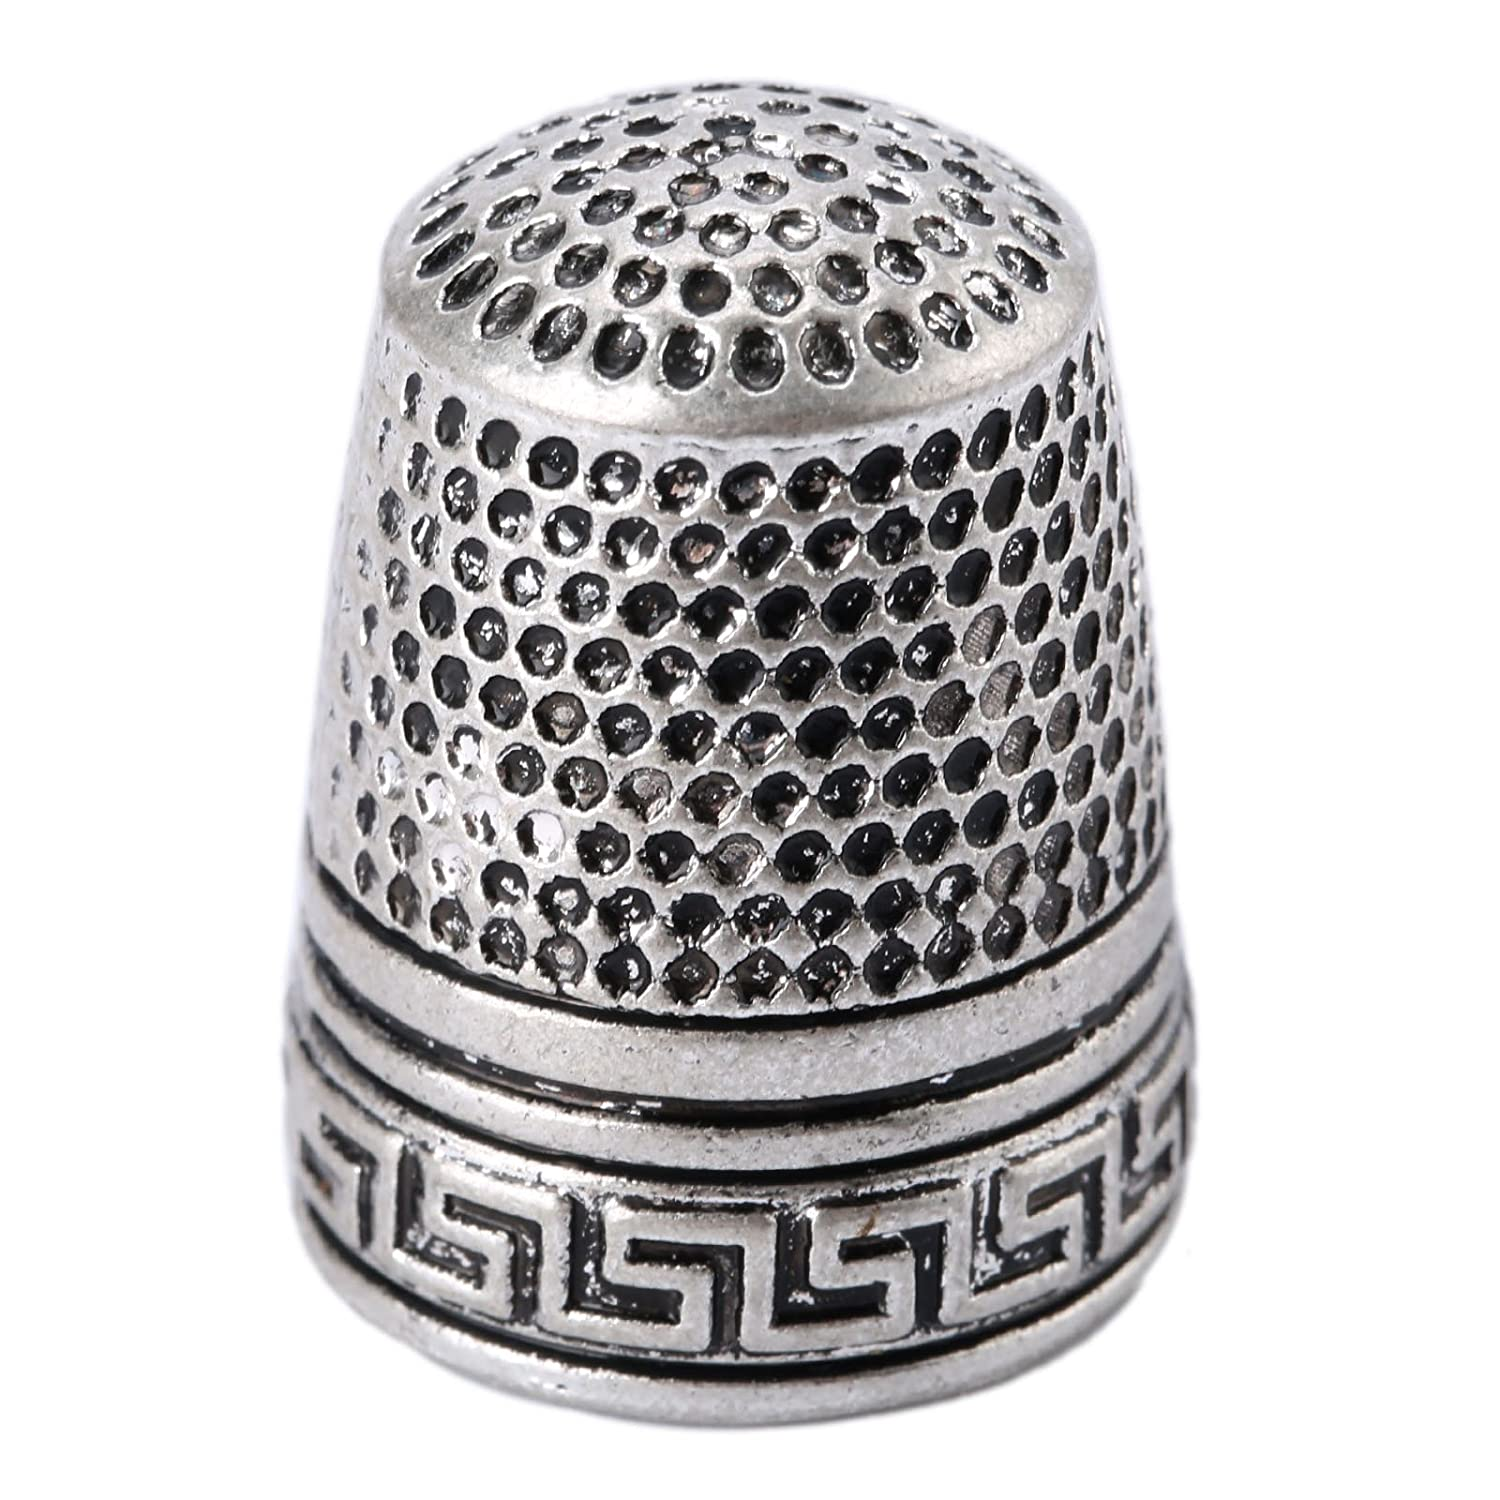 10Pcs Silver Finger Thimble Sewing Grip Fingertip Protector Metal Shield Pin Needles Partner for DIY Crafts Tools Needlework Mtsooning